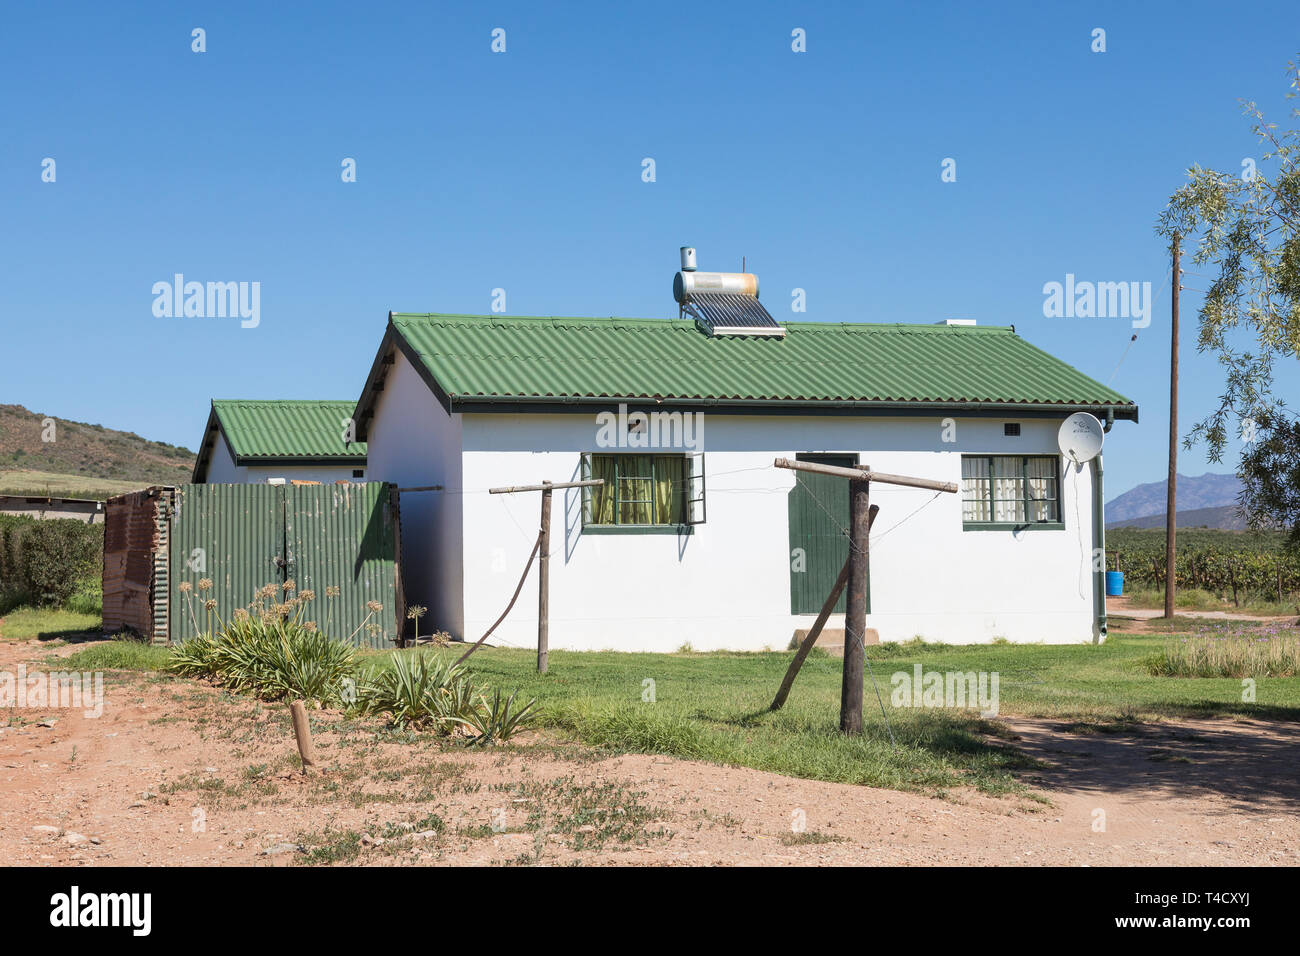 Farm worker's cottage with roof mounted solar hot water geyser for renewable energy and heating, South Africa - Stock Image